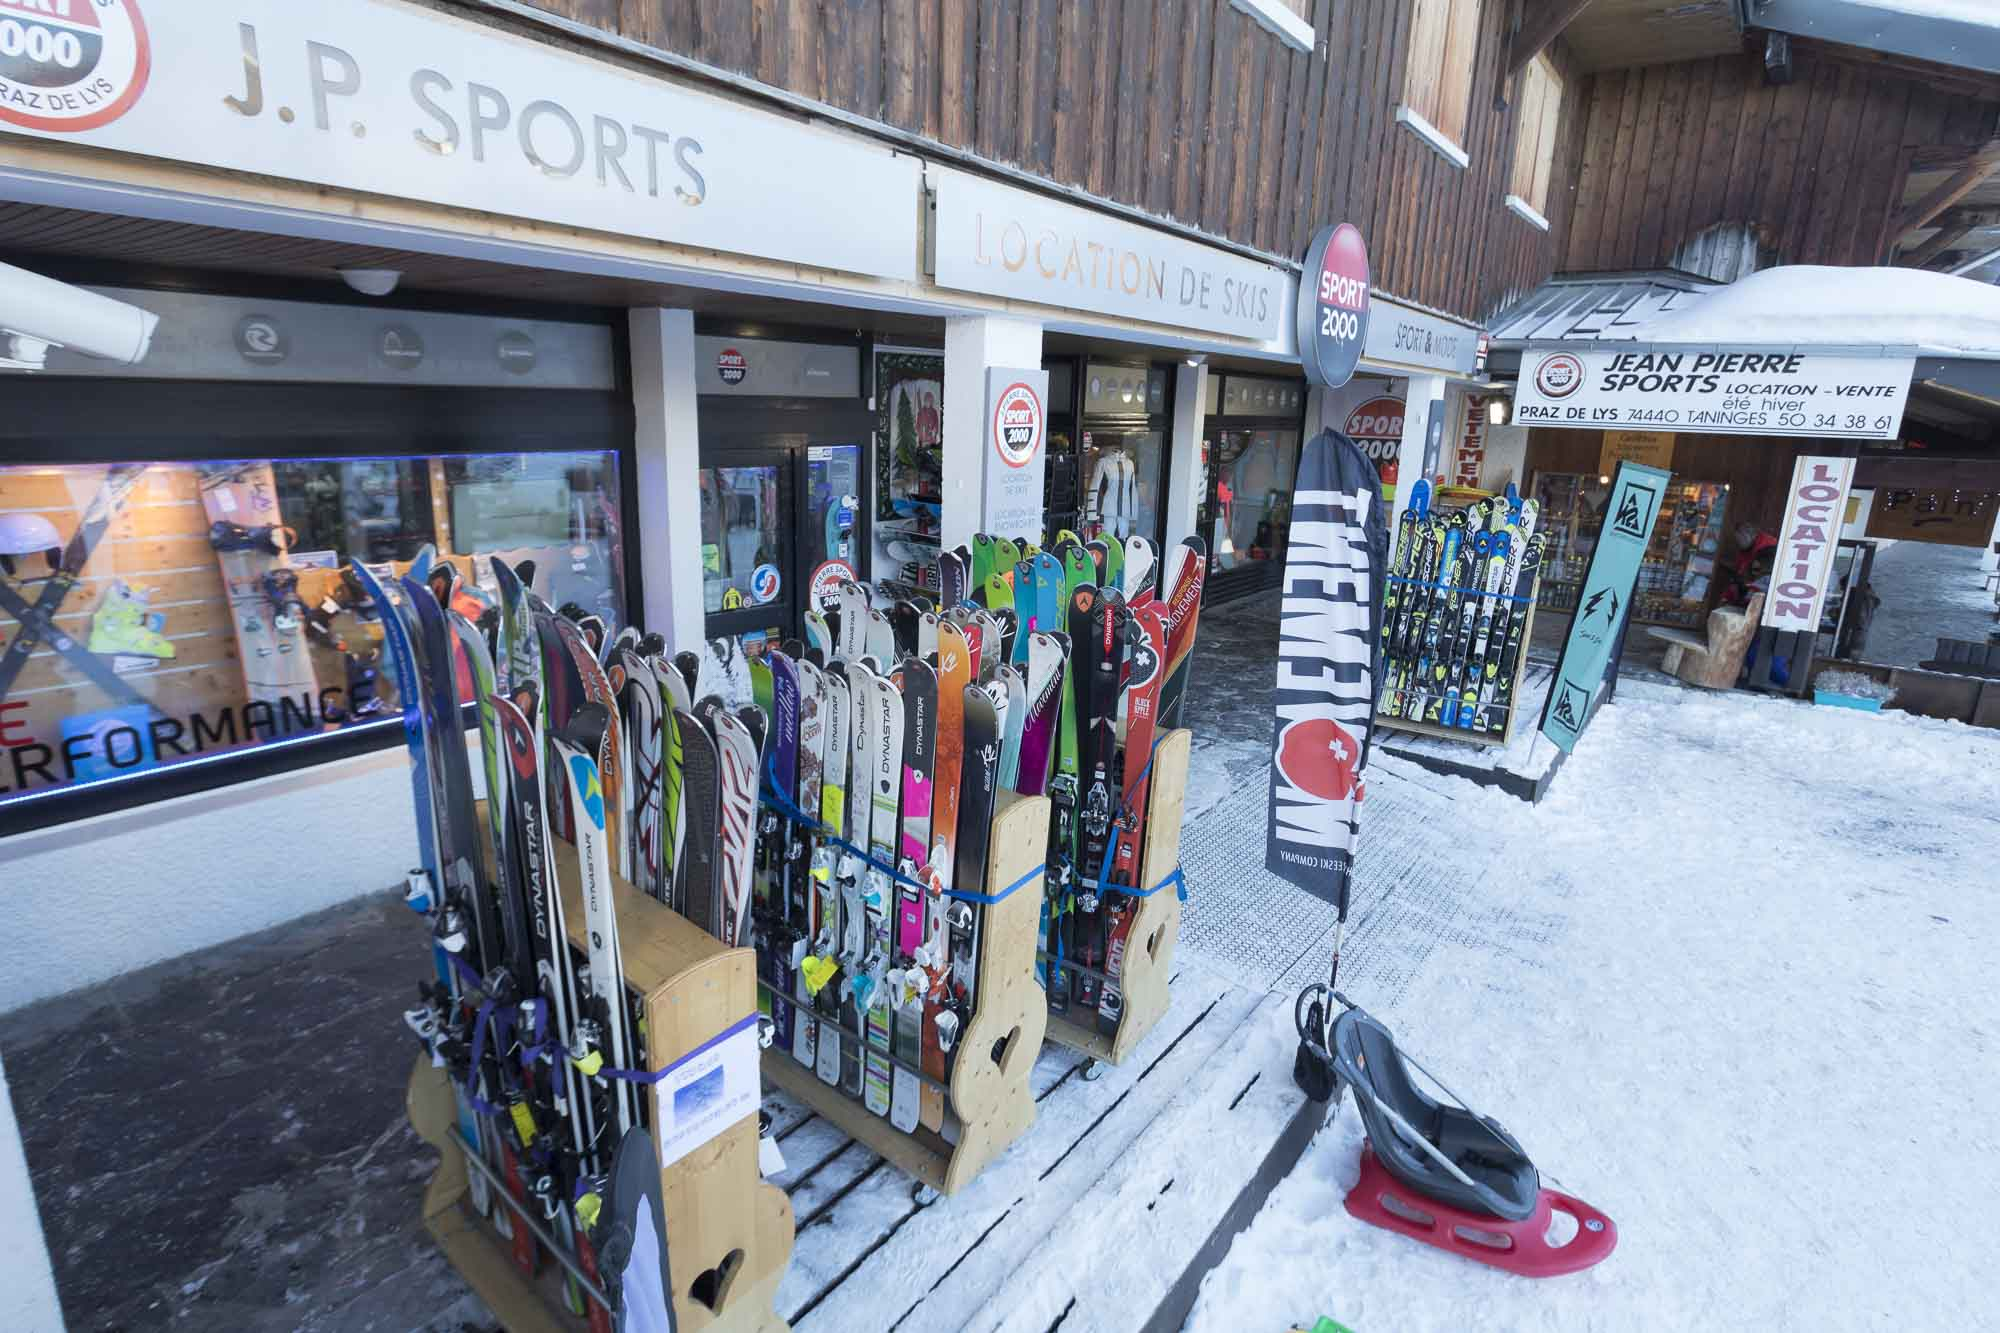 Jean Pierre Sports Praz de Lys-5